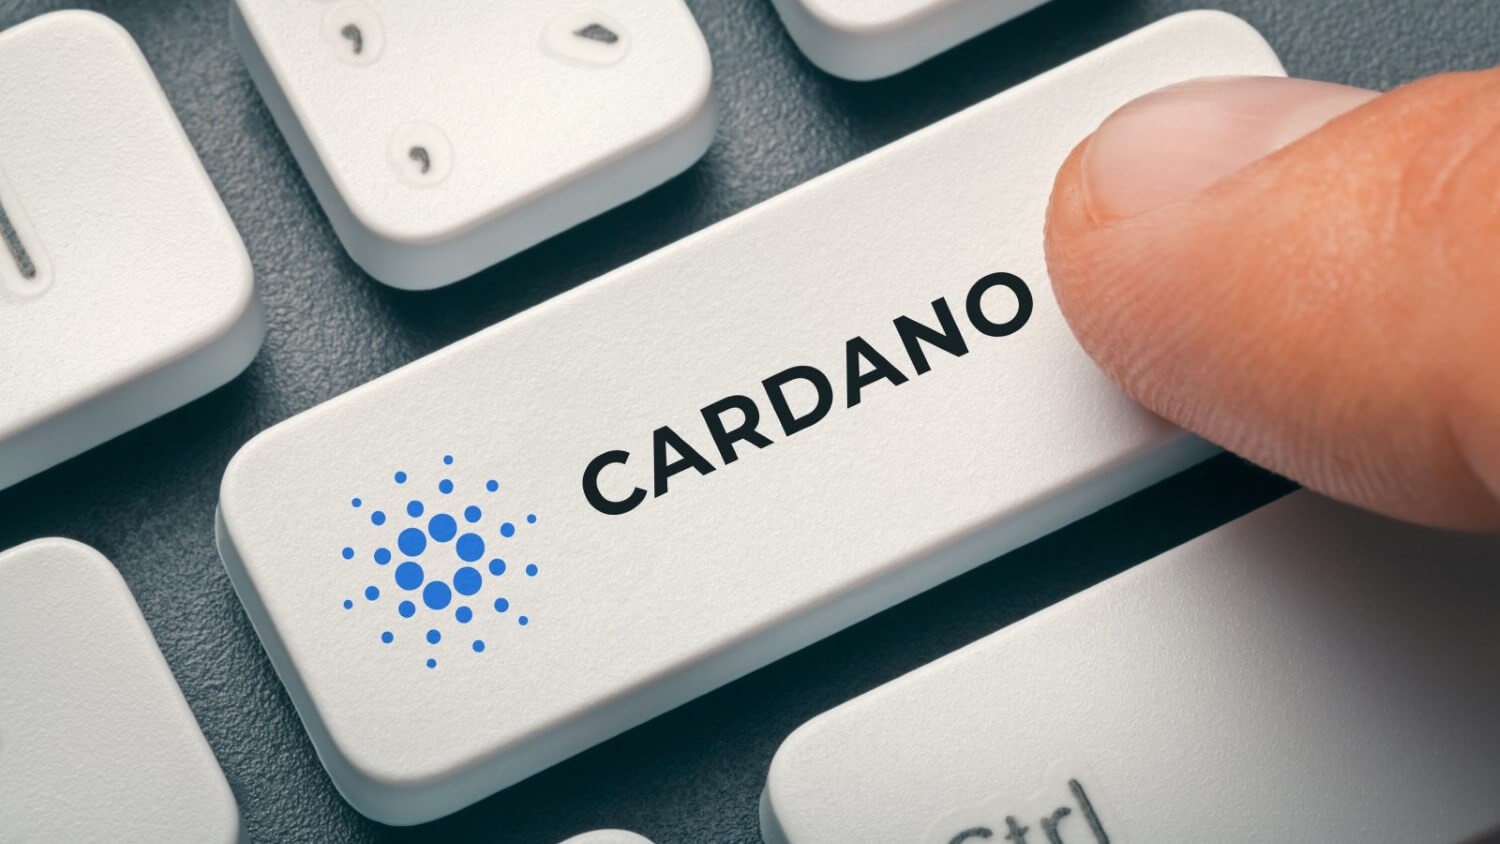 Cardano Releases Solution that Scales More than Visa's Payment Network